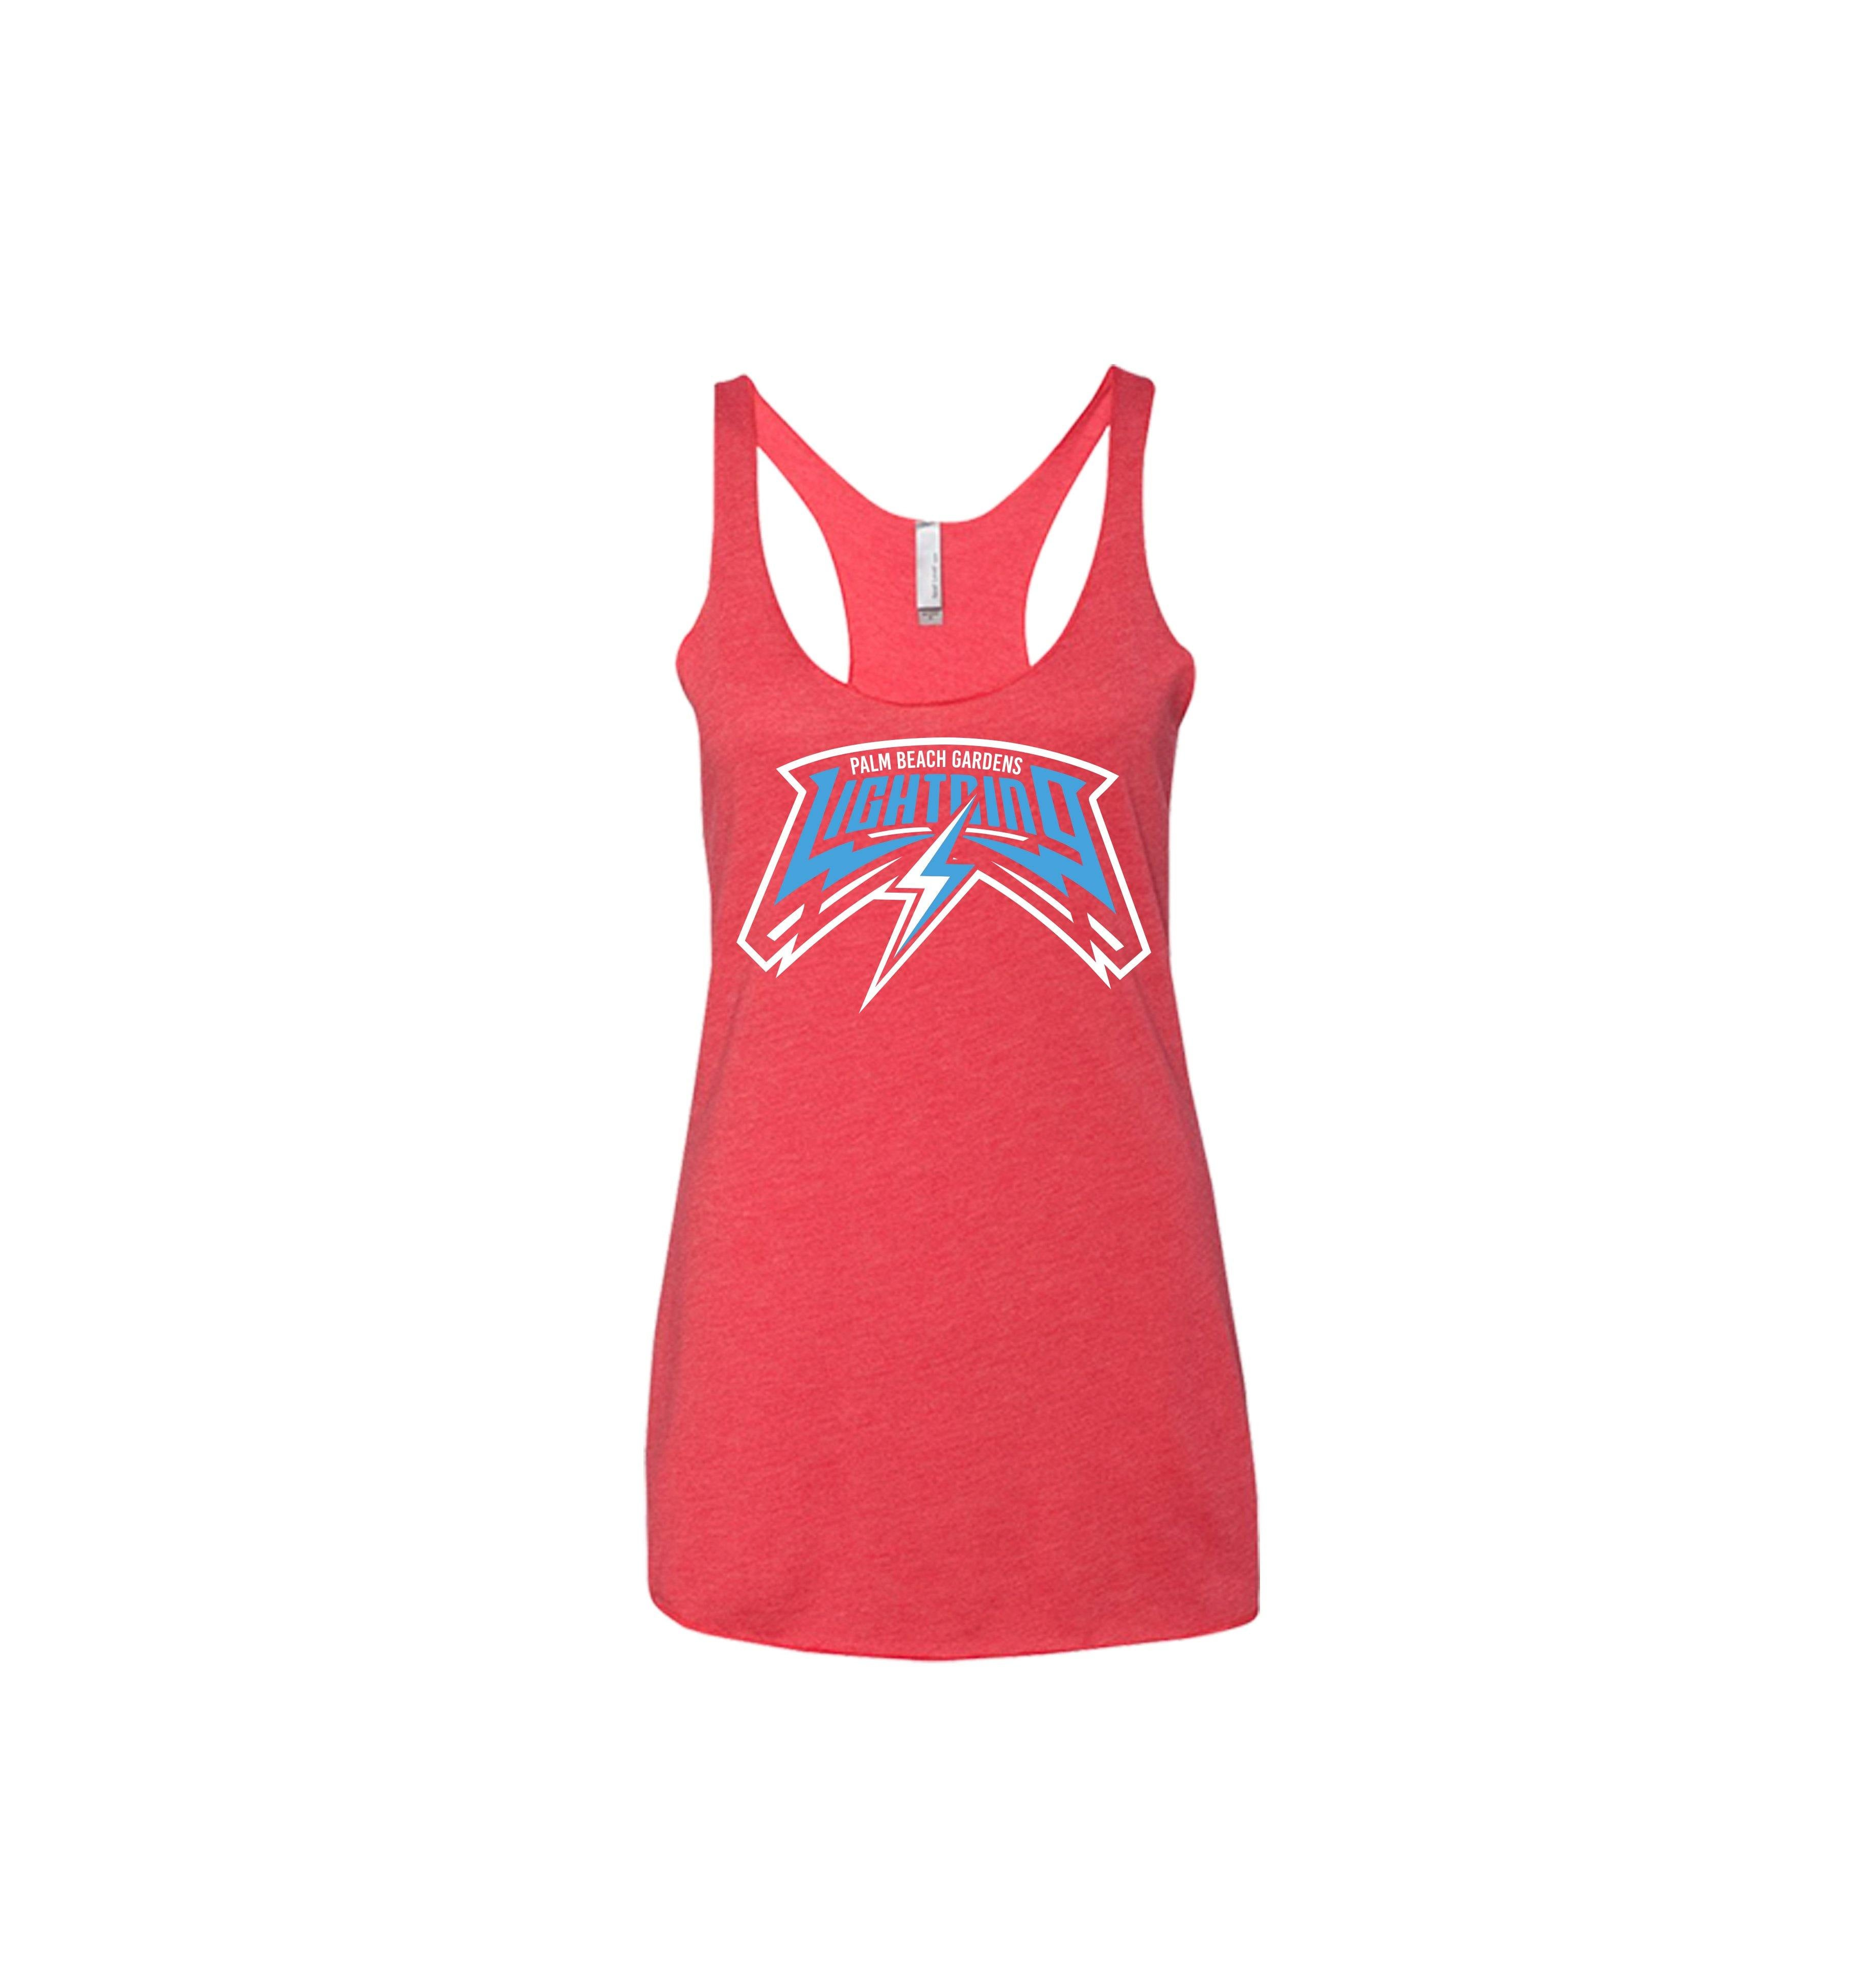 PBG BLUE Lightning Women's Racerback - Shops by Green Gorilla